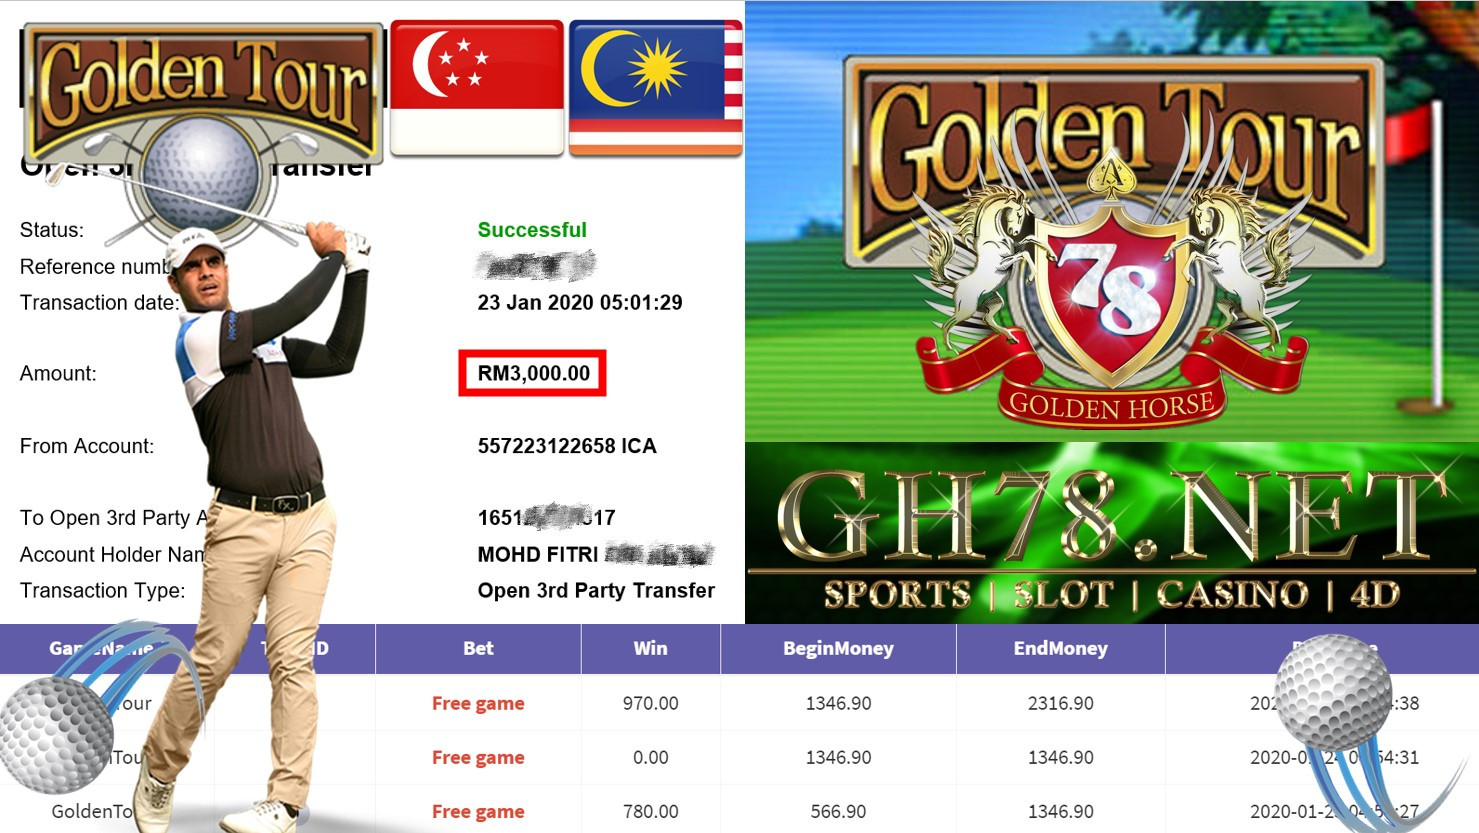 2020 NEW YEAR !!! MEMBER MAIN 918KISS, GOLDEN TOUR ,WITHDRAW RM3000 !!!